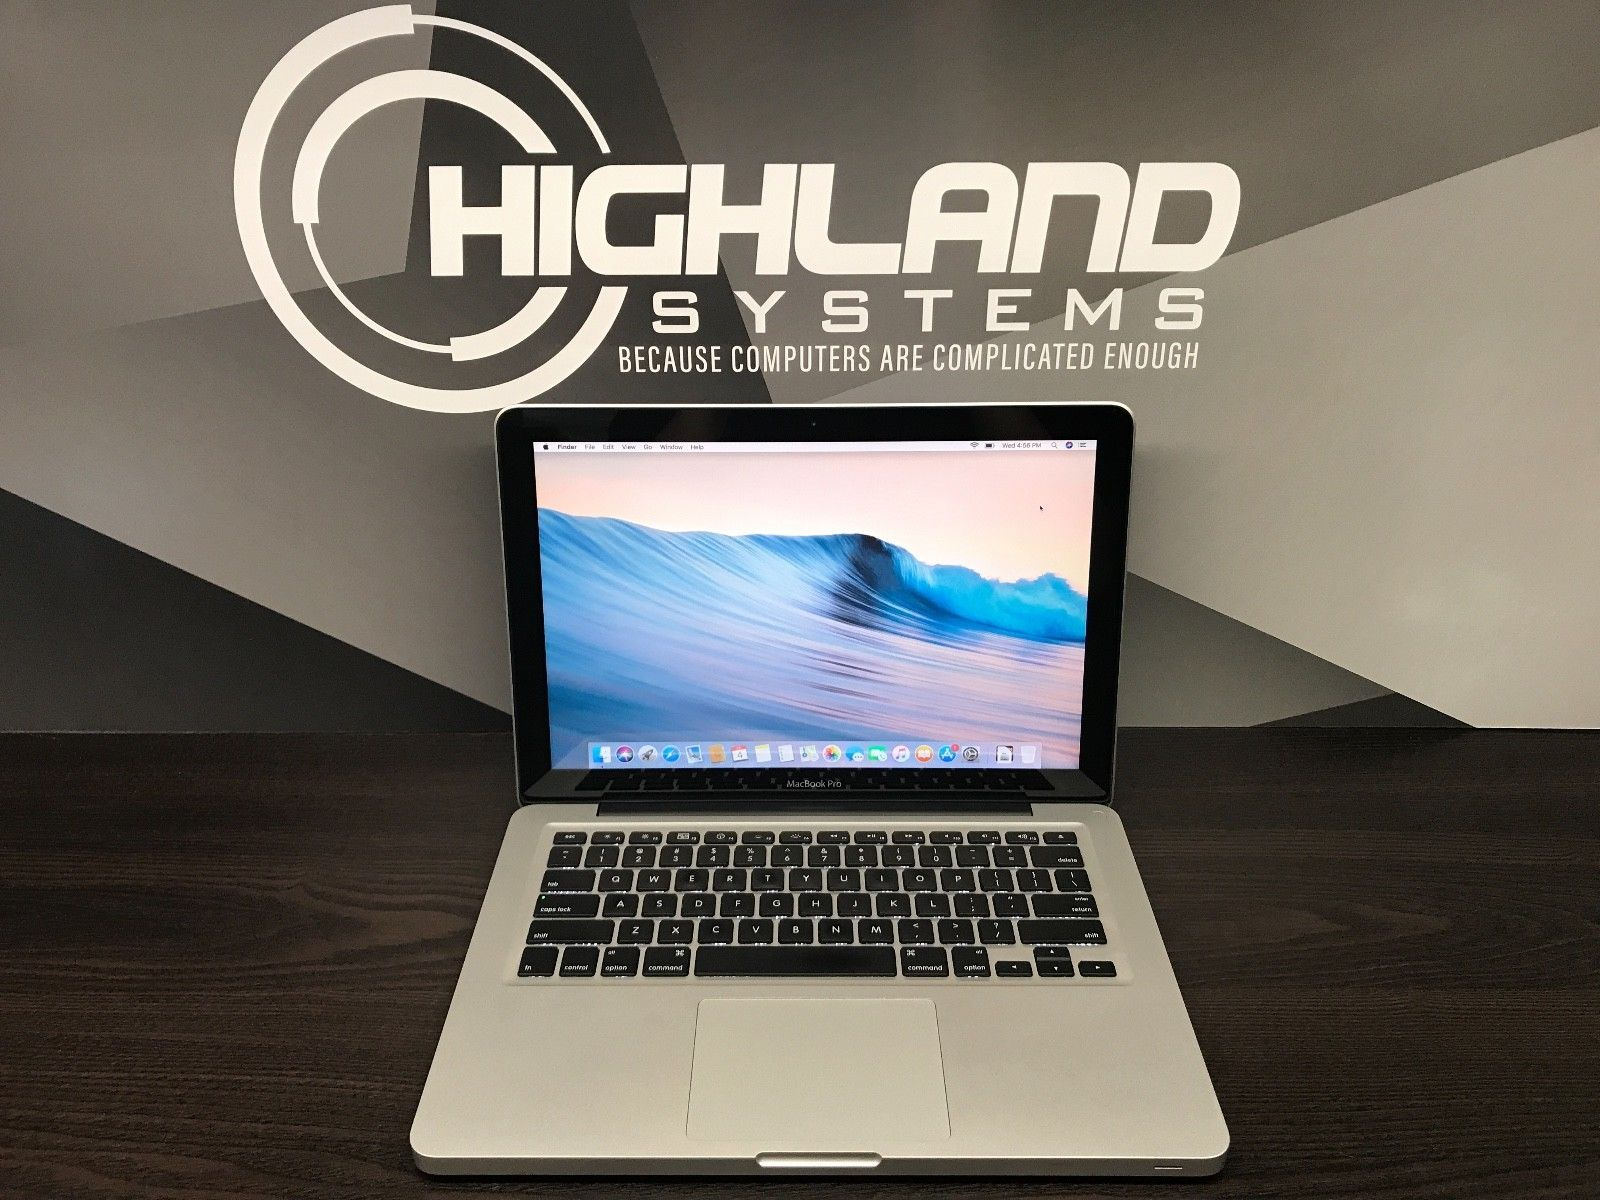 Ever Wanted A Macbook You Chance To Get Aan Awesome Apple Macbook From Ebay Give It A Look Apple Macbook Macbook Apple Macbook Pro